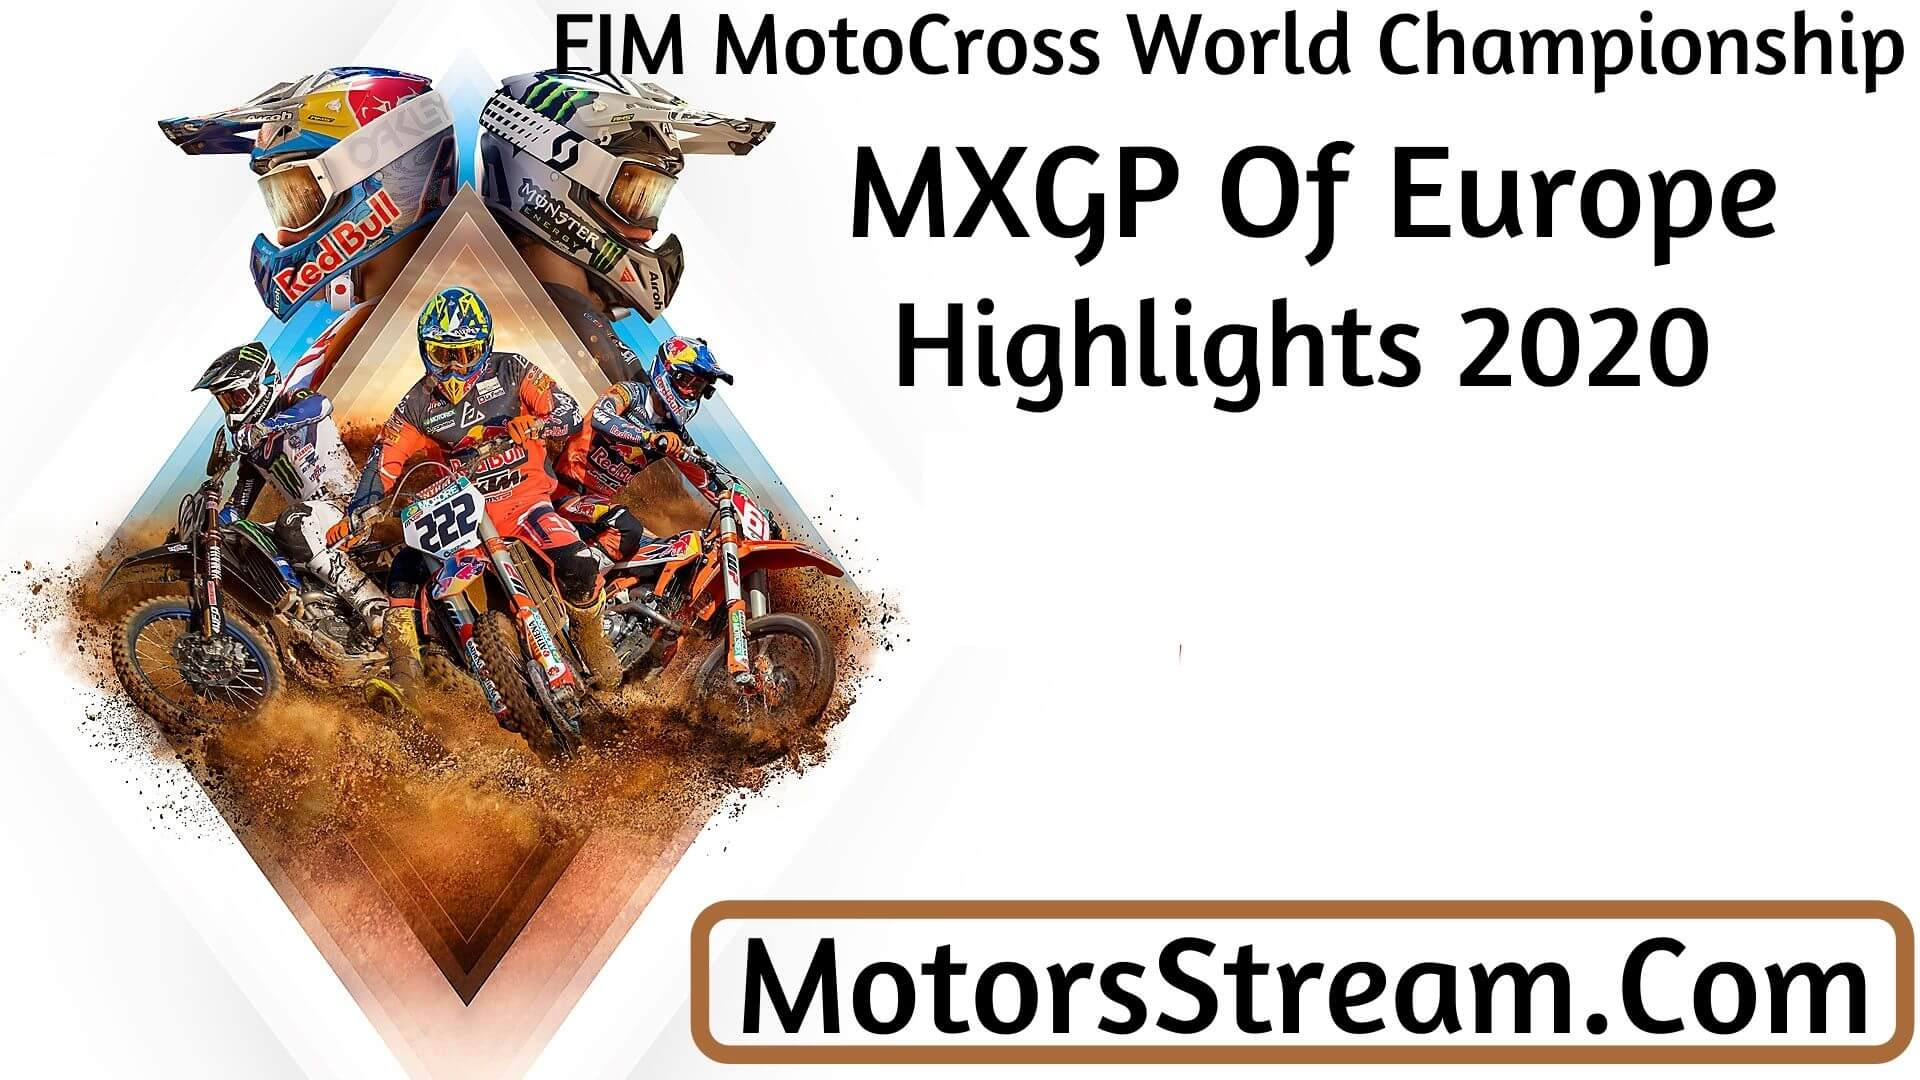 MXGP Of Europe Highlights 2020